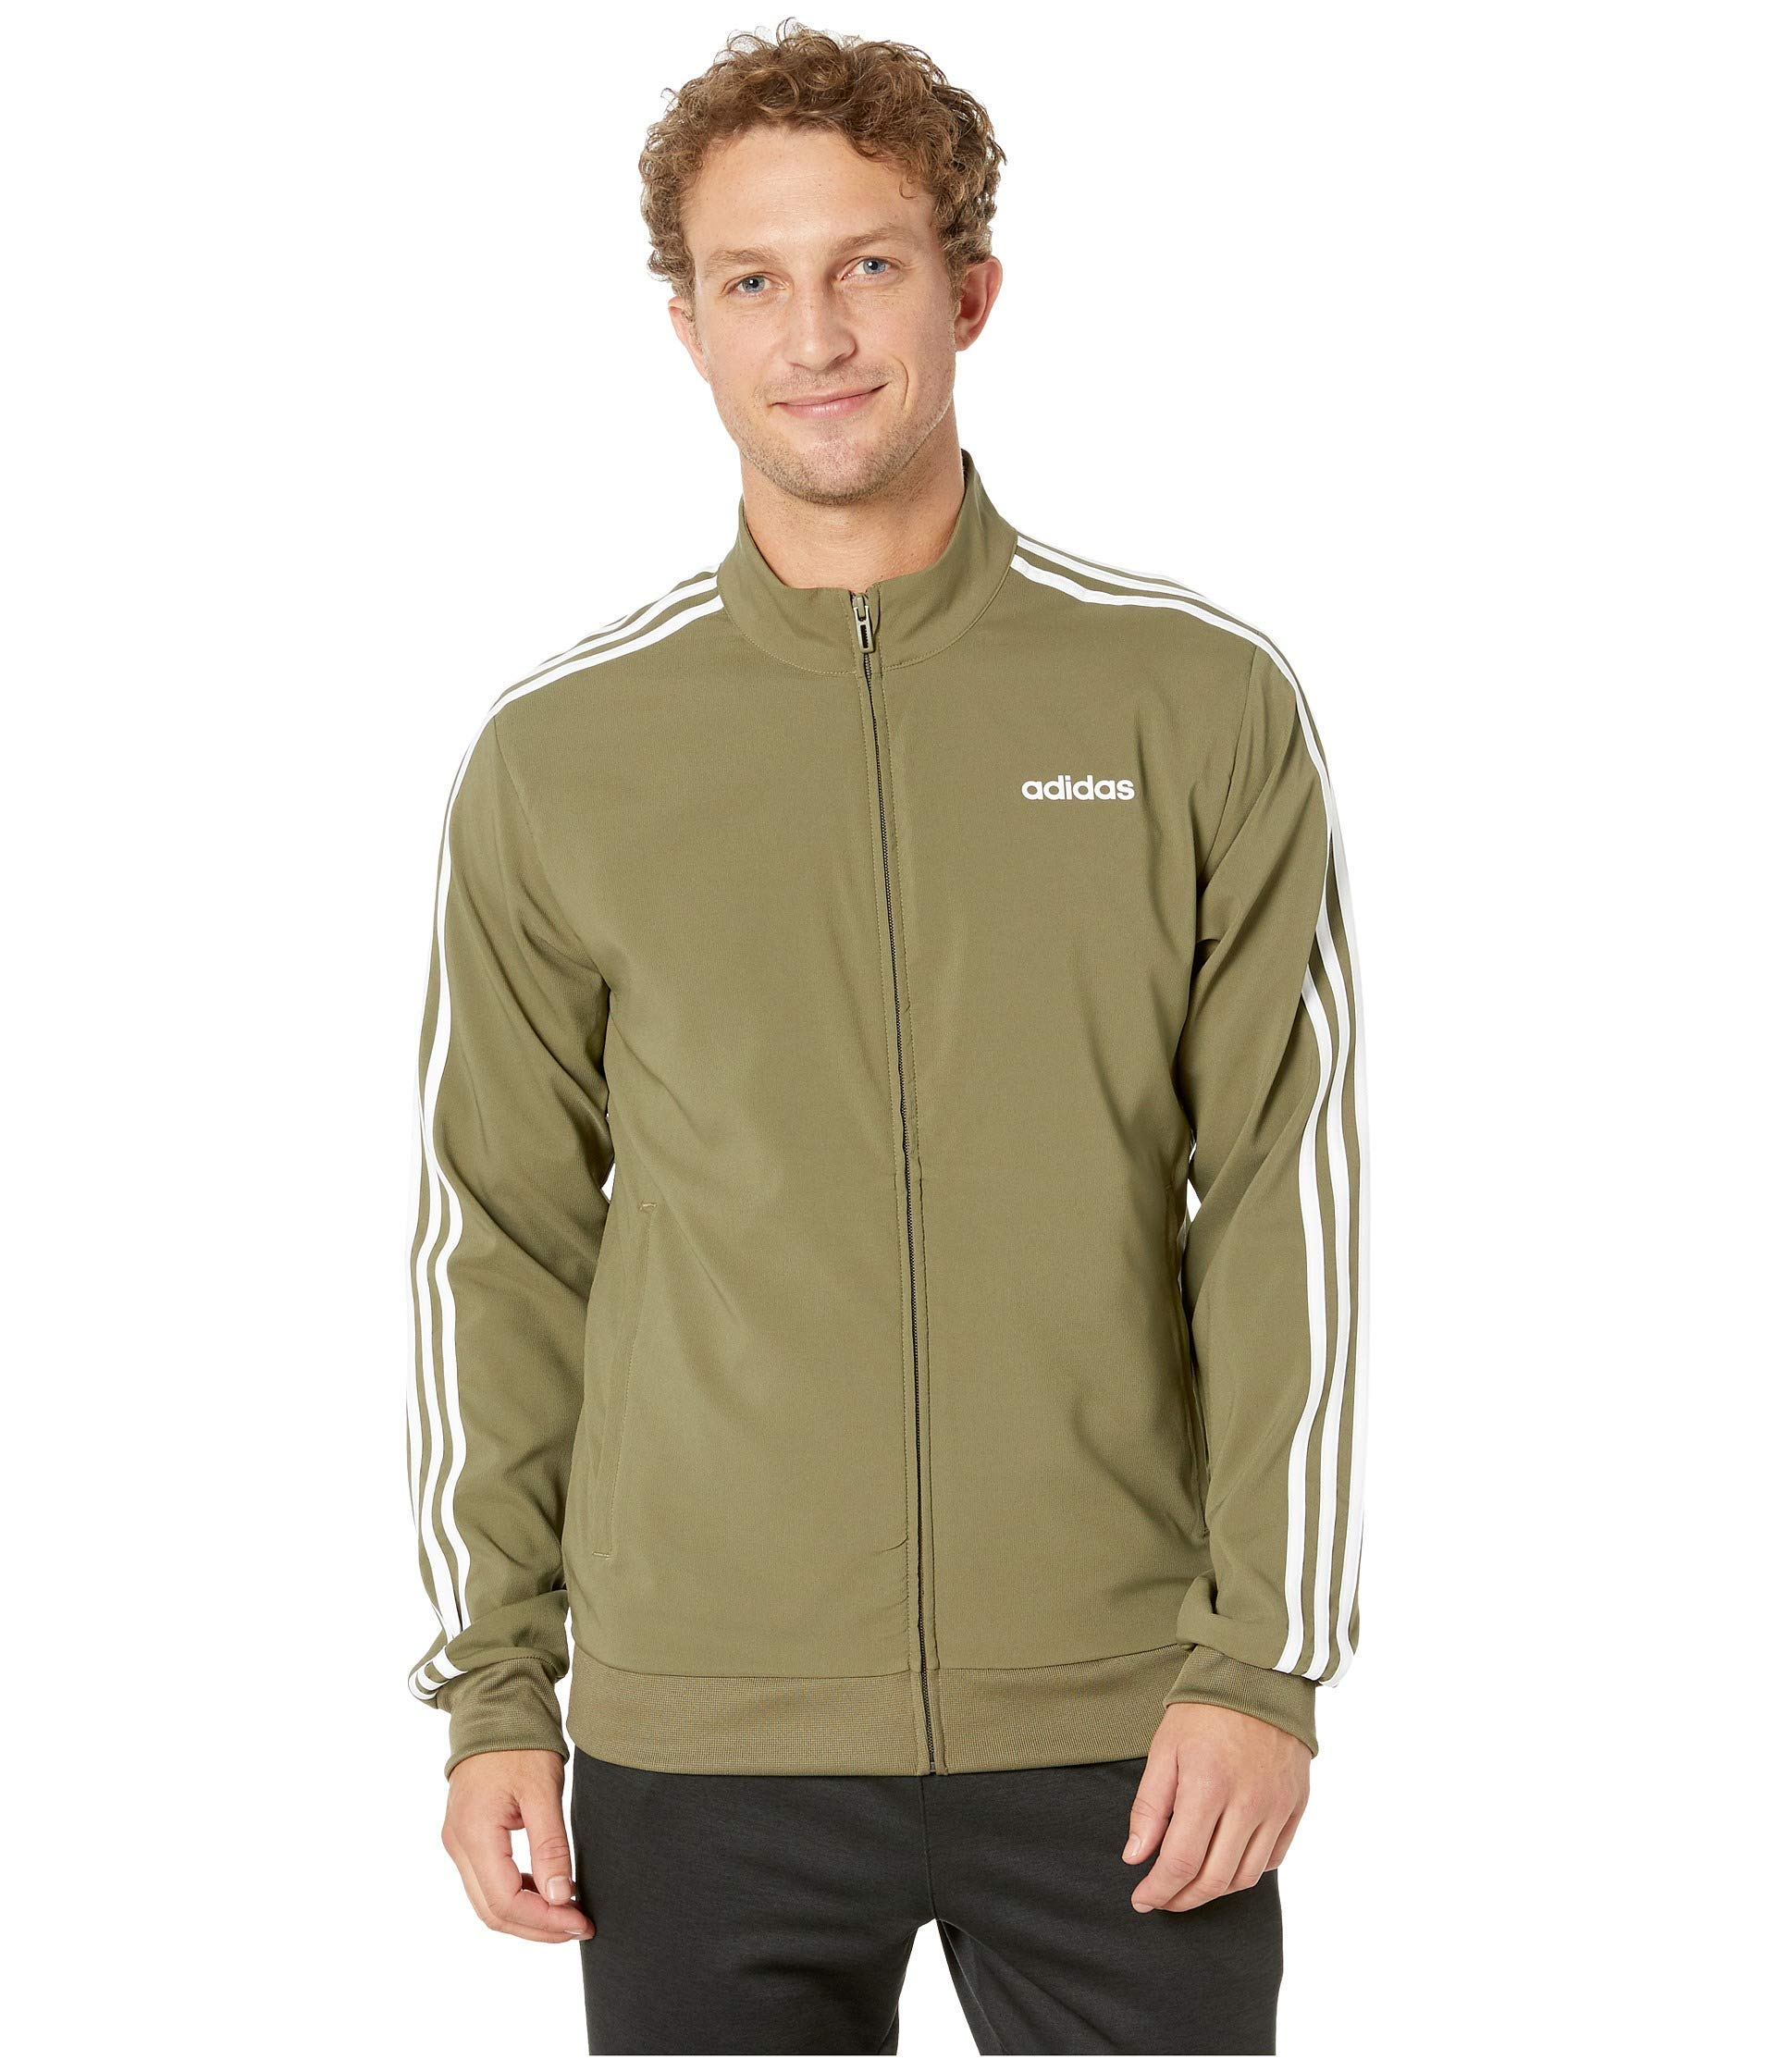 adidas Men's Essentials 3-Stripes Woven Track Jacket, Raw Khaki/White, Large by adidas